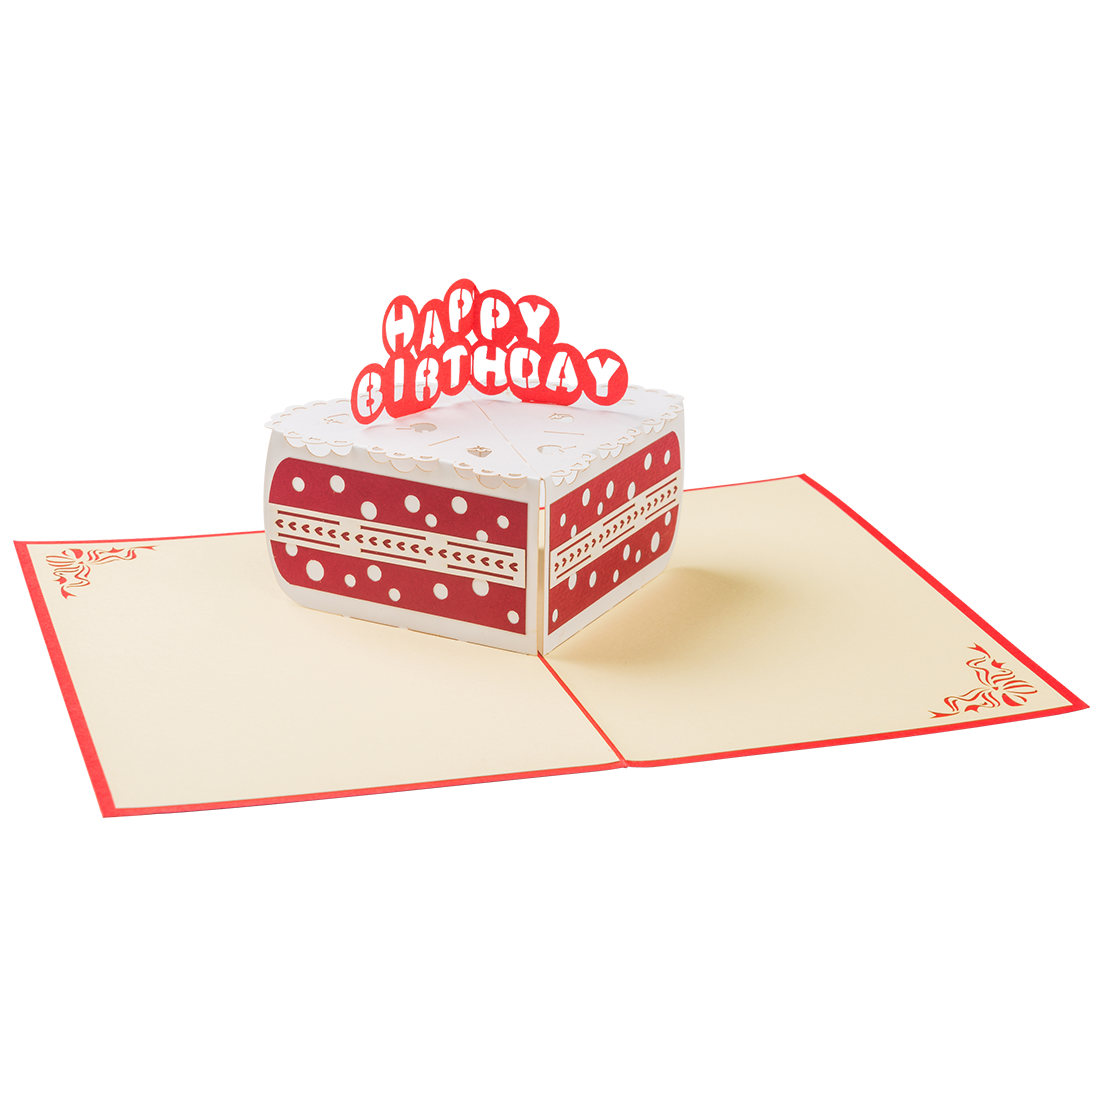 Poppy clipart haig fund. Slice of red velvet